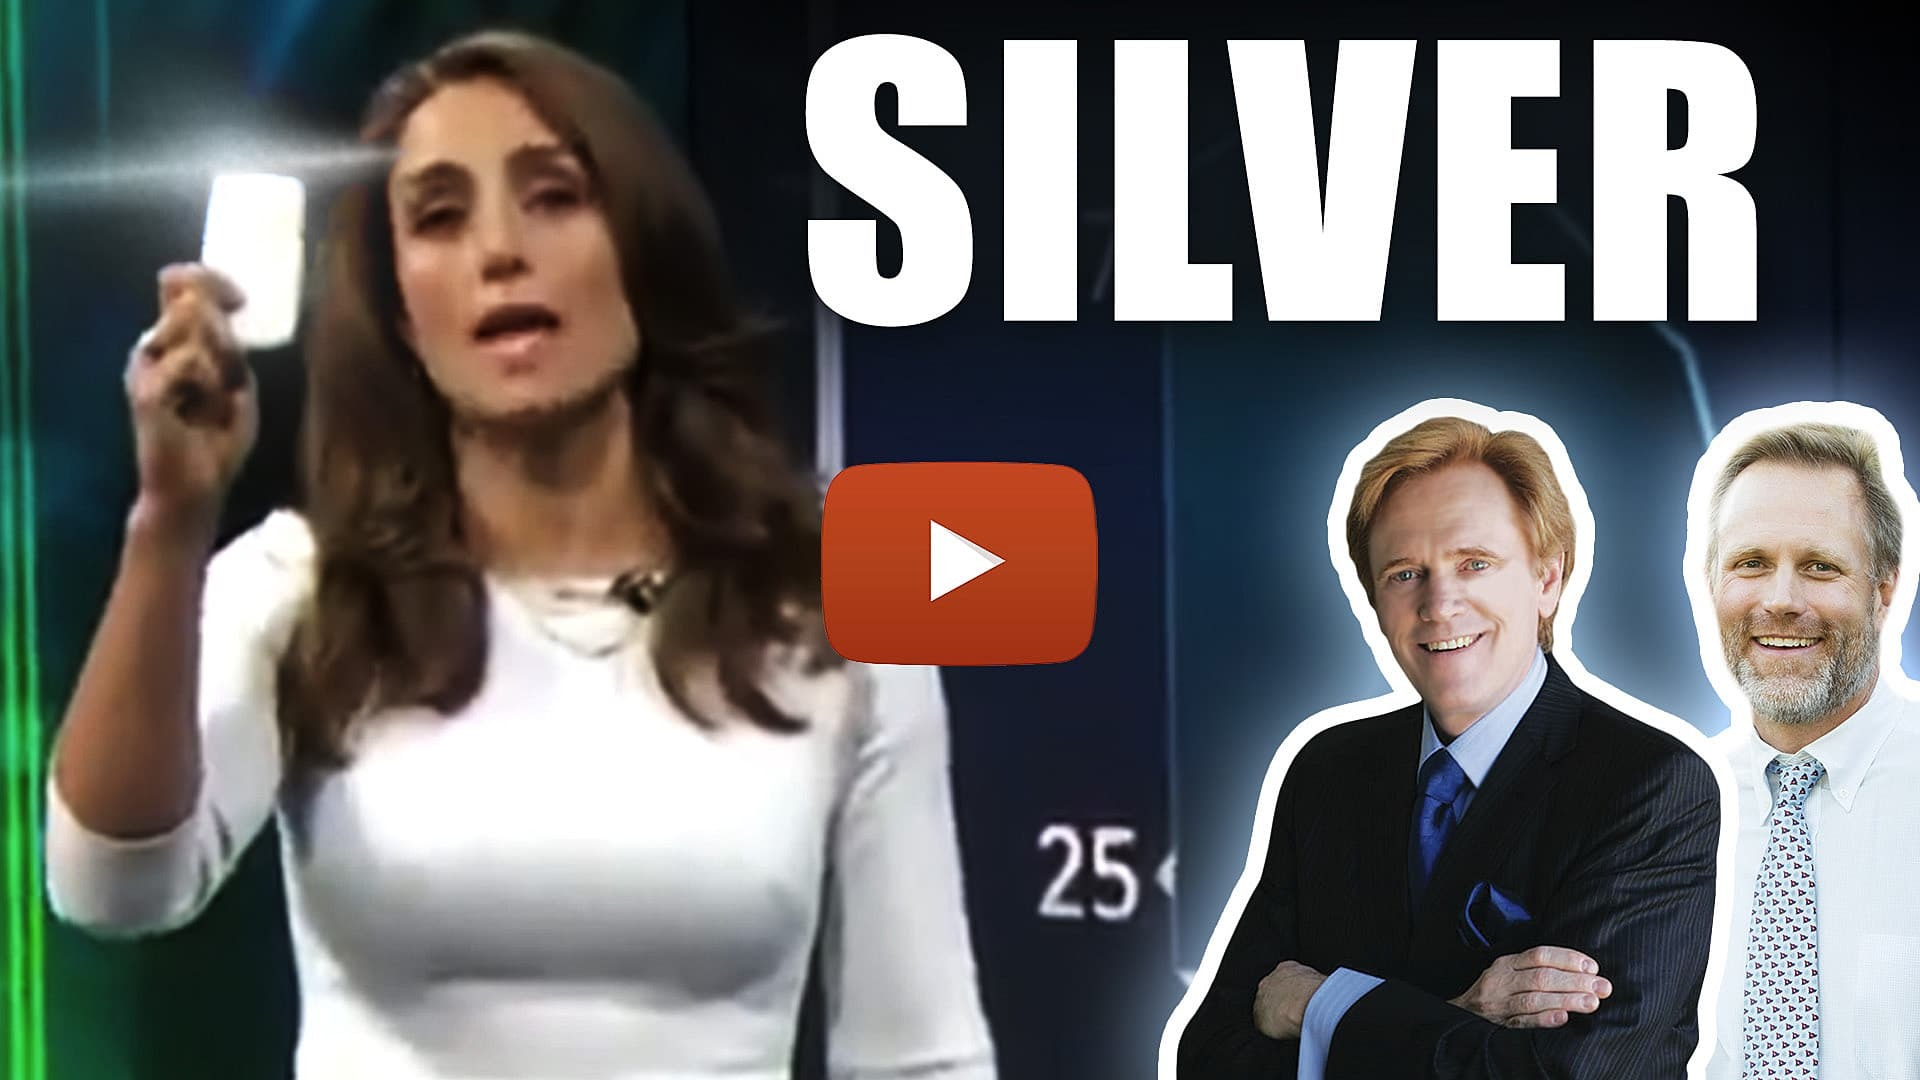 SILVER: What You Need To Know About Investing & Inflation Right Now